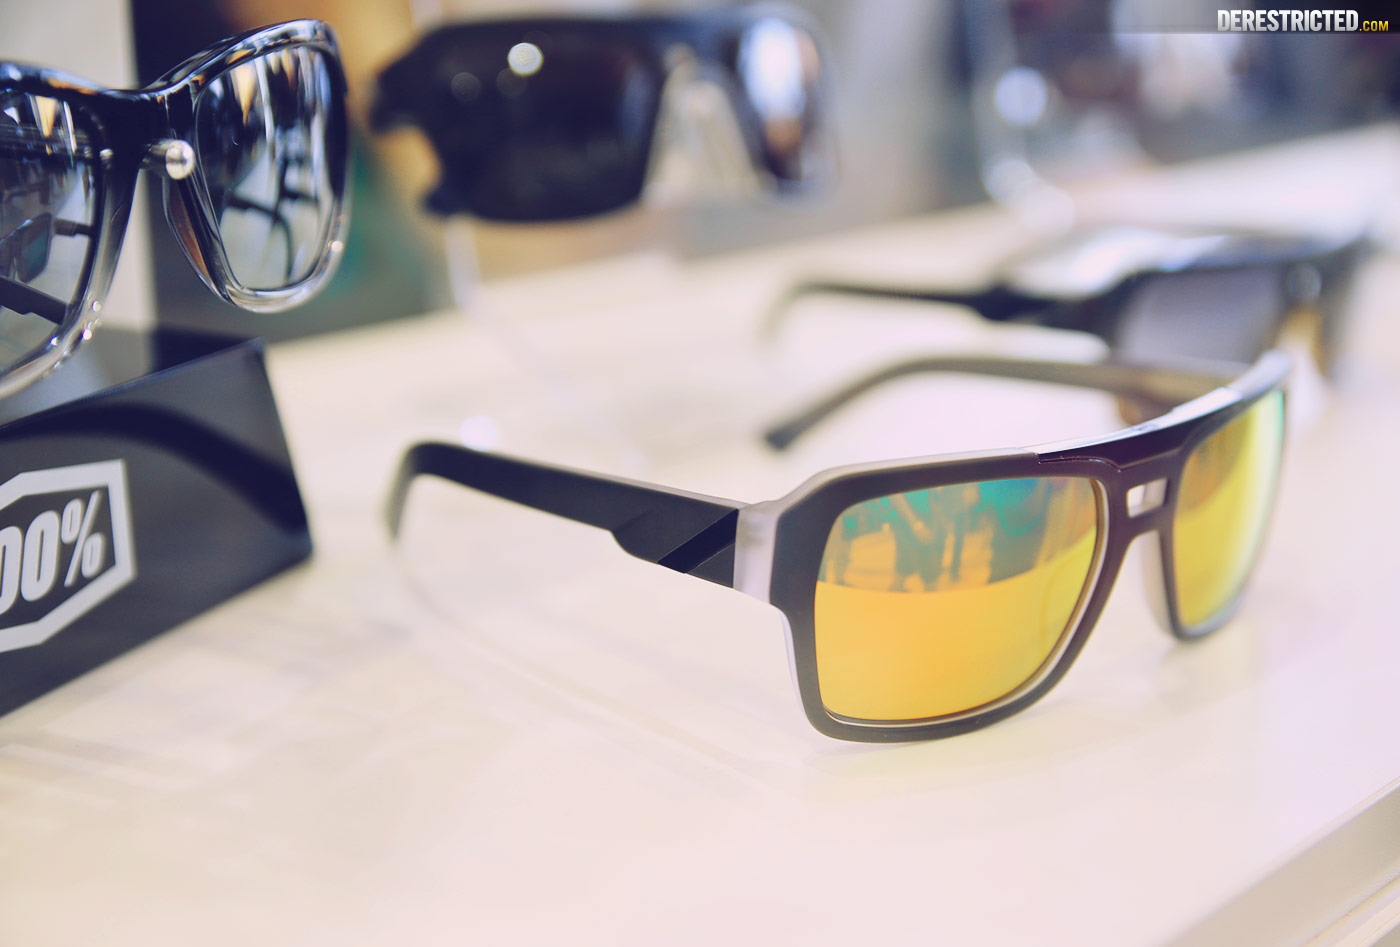 100 Percent Sunglasses  2016 100 gear at eurobike derestricted